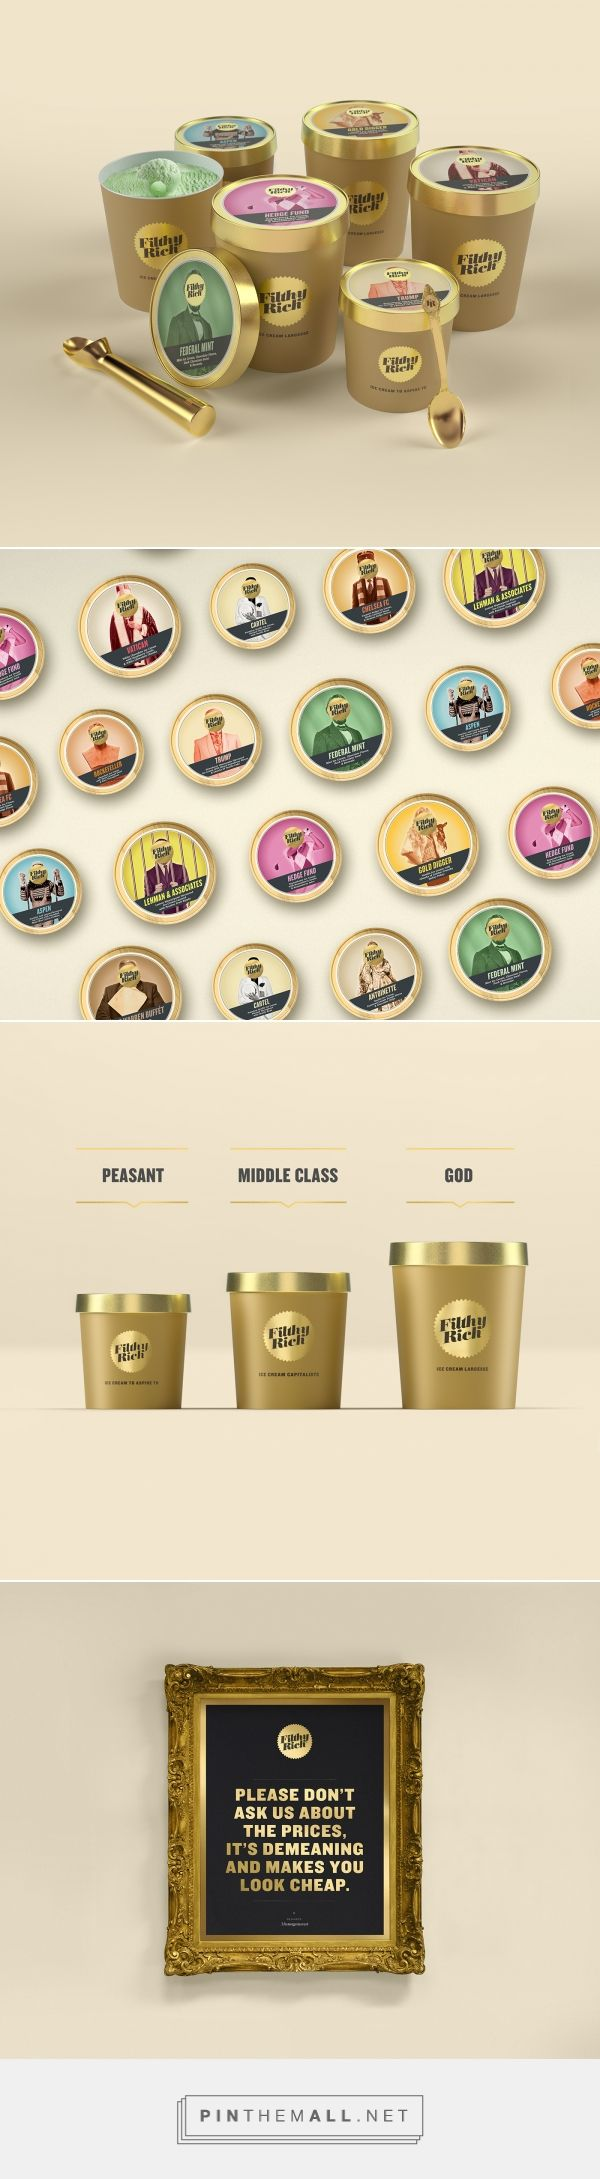 Filthy Rich Ice Cream Packaging by Milk NZ Limited | Fivestar Branding Agency – Design and Branding Agency & Curated Inspiration Gallery